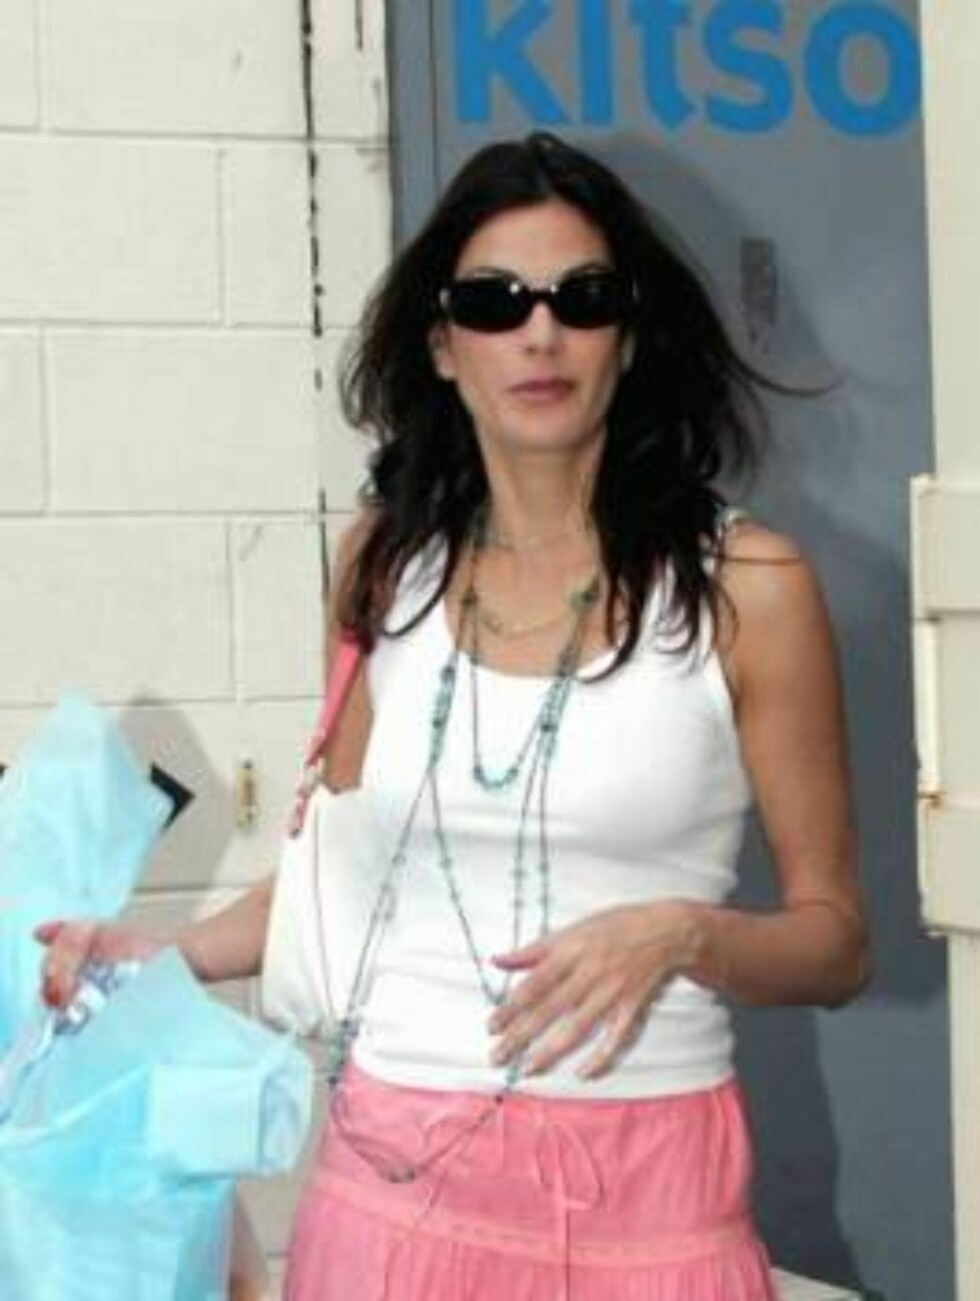 """<strong>Code:</strong> X17XX8 - no code, Beverly Hills, USA, 03.04.2005: """"Desperate Housewives"""" Teri Hatcher shopping at Kitson store in Beverly Hills All Over Press / X17 Agency  / ALL OVER PRESS Foto: All Over Press"""